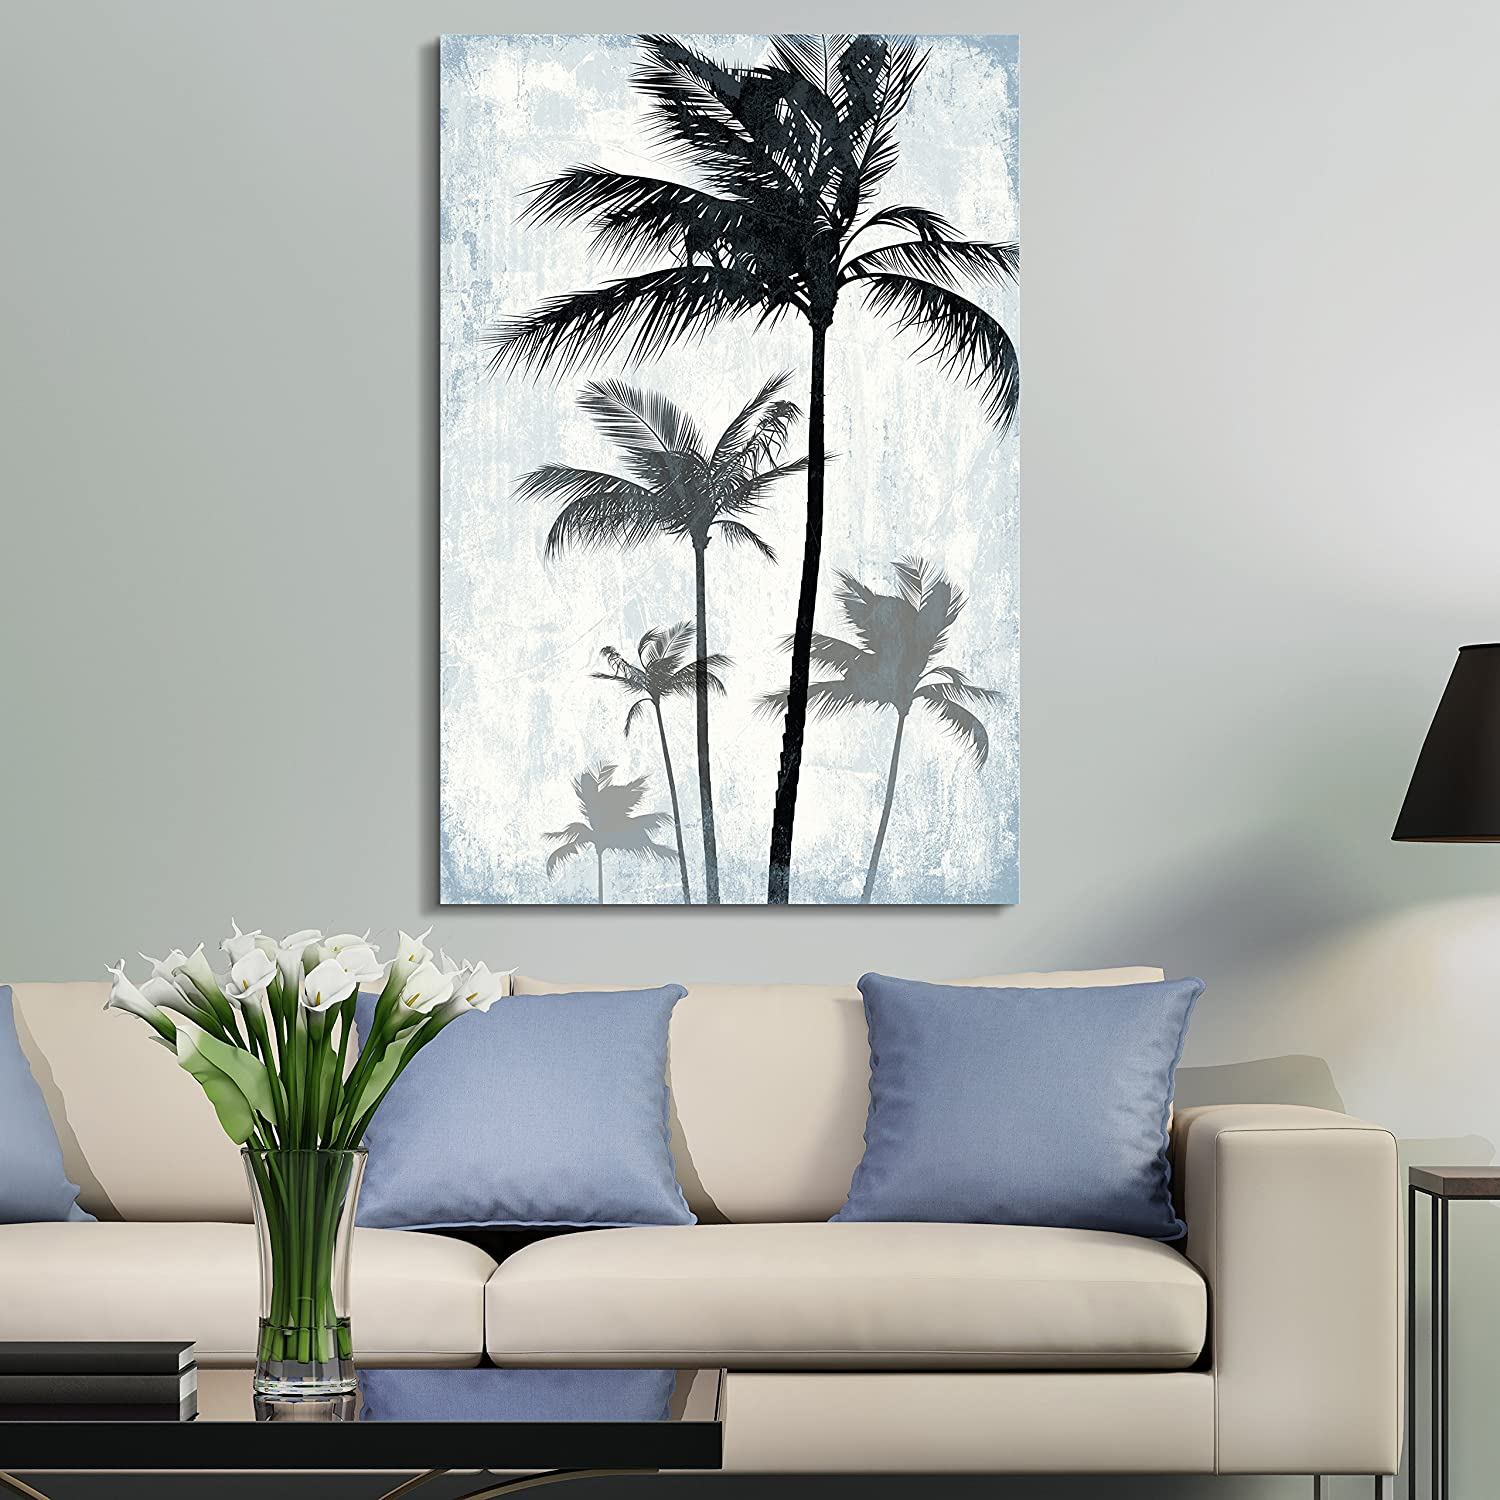 Charming Portrait, Classic Artwork, Tropical Palm Trees on Rustic Background